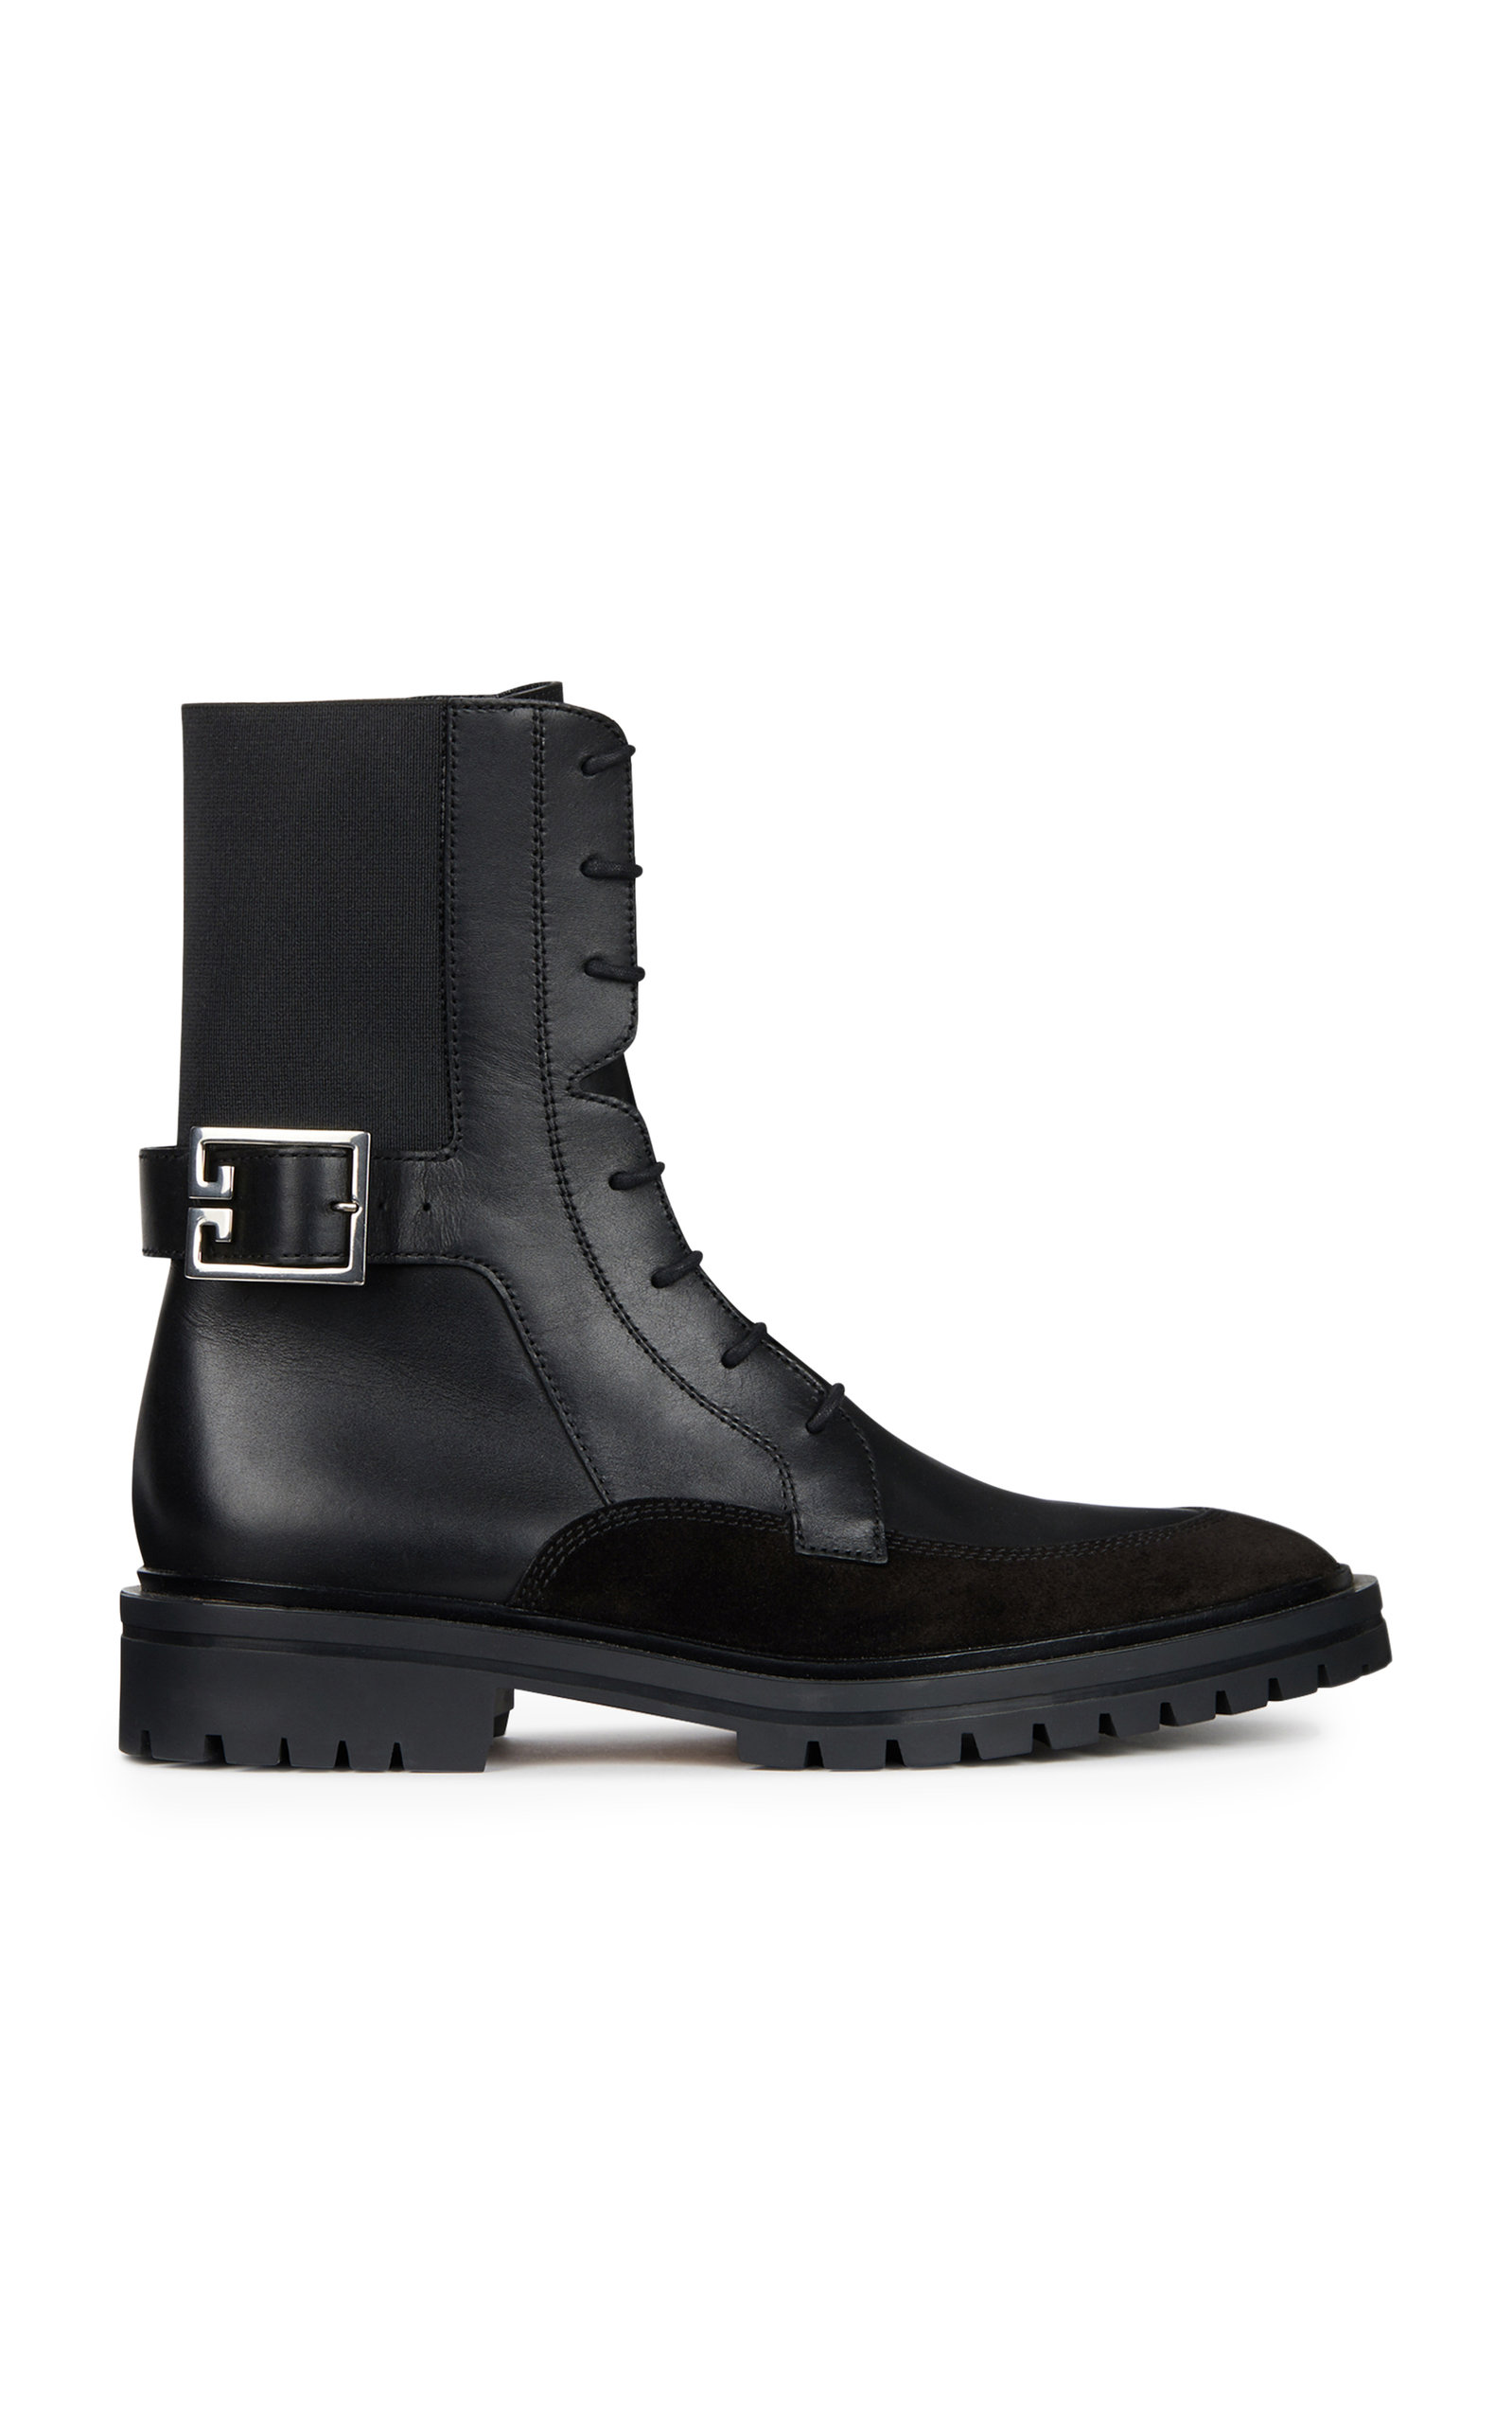 Givenchy Aviator Leather and Suede Lace-Up Boots zxb61D0x